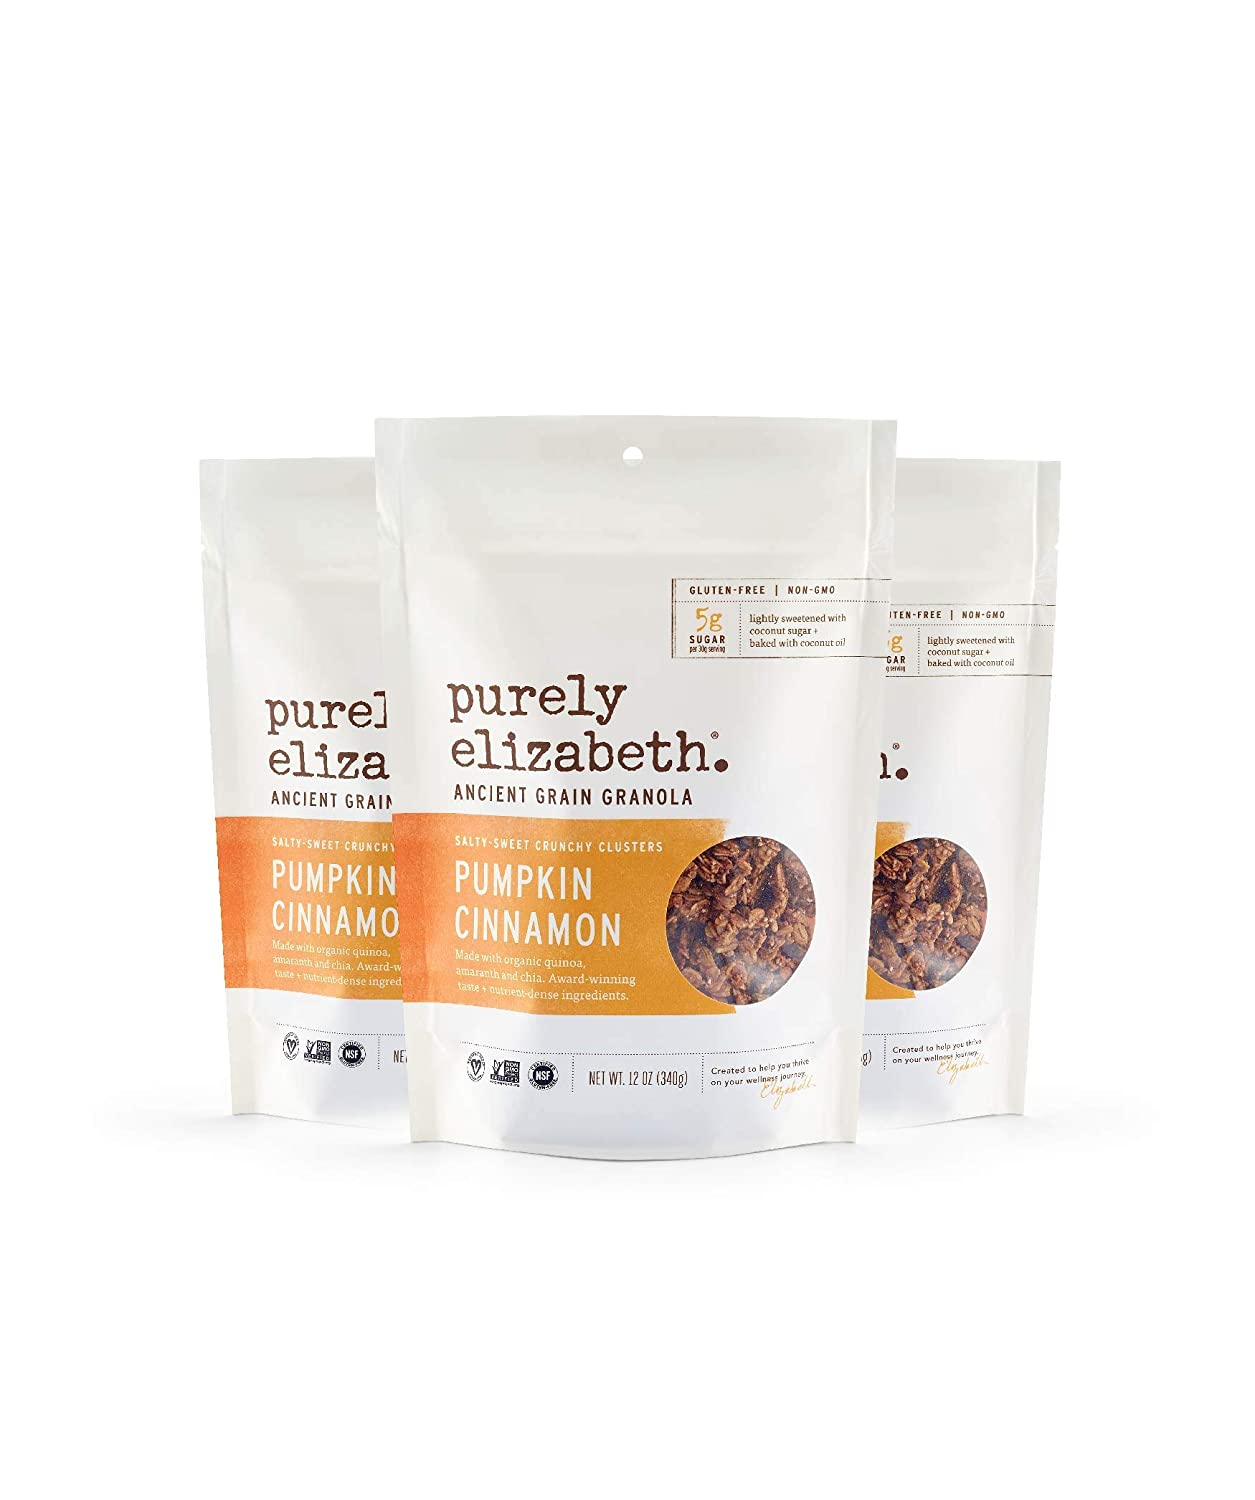 Purely Elizabeth Gluten-Free Granola – Find of the Month